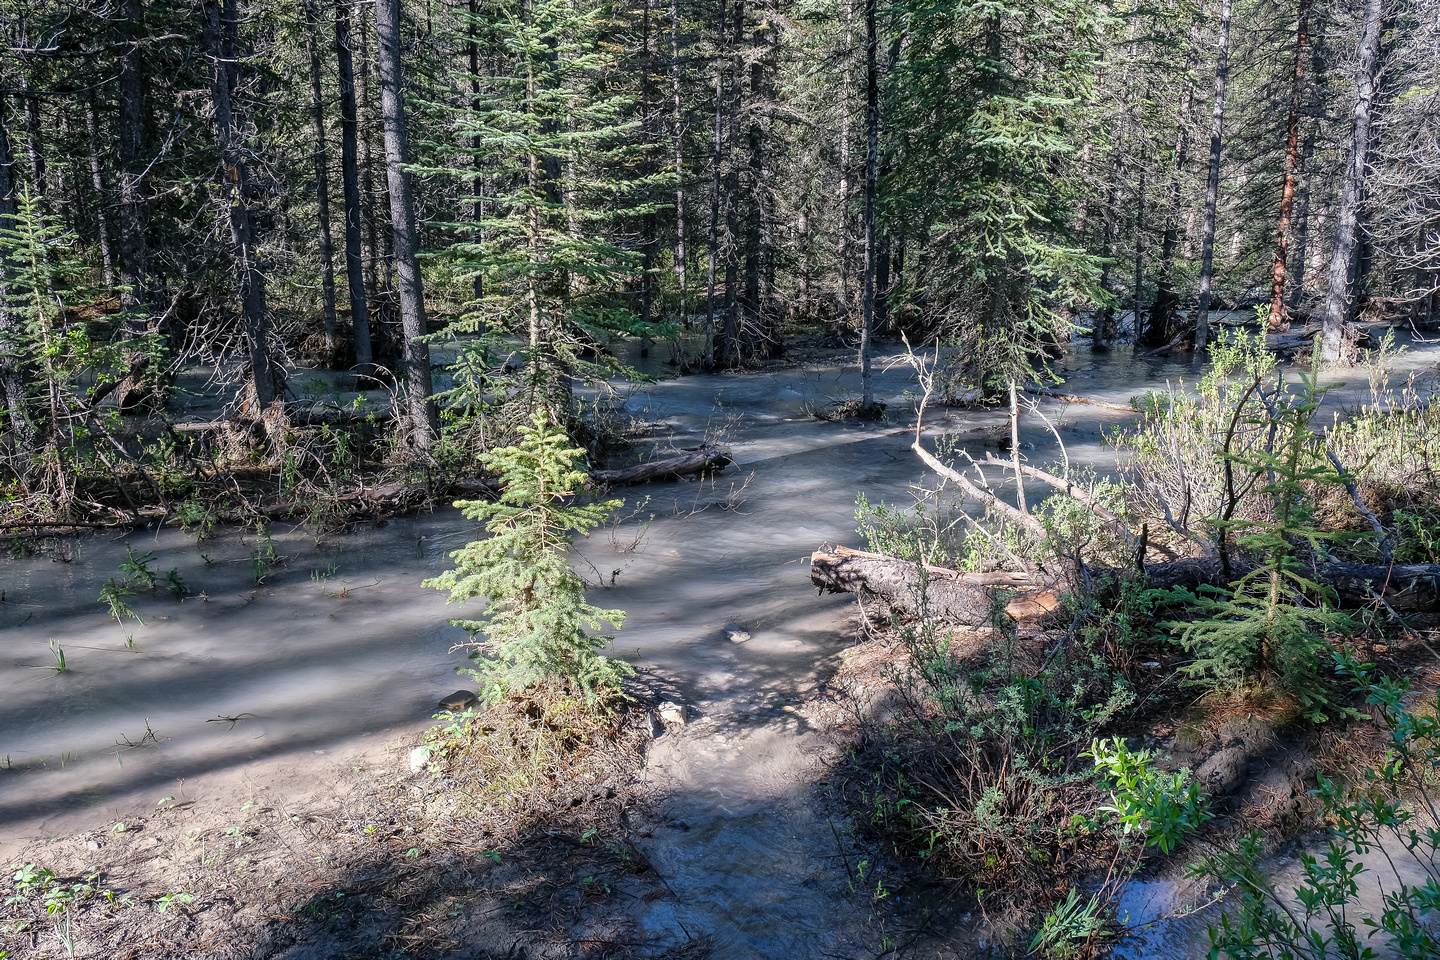 This was what my approach trail looked like thanks to a very high Little Elbow River.